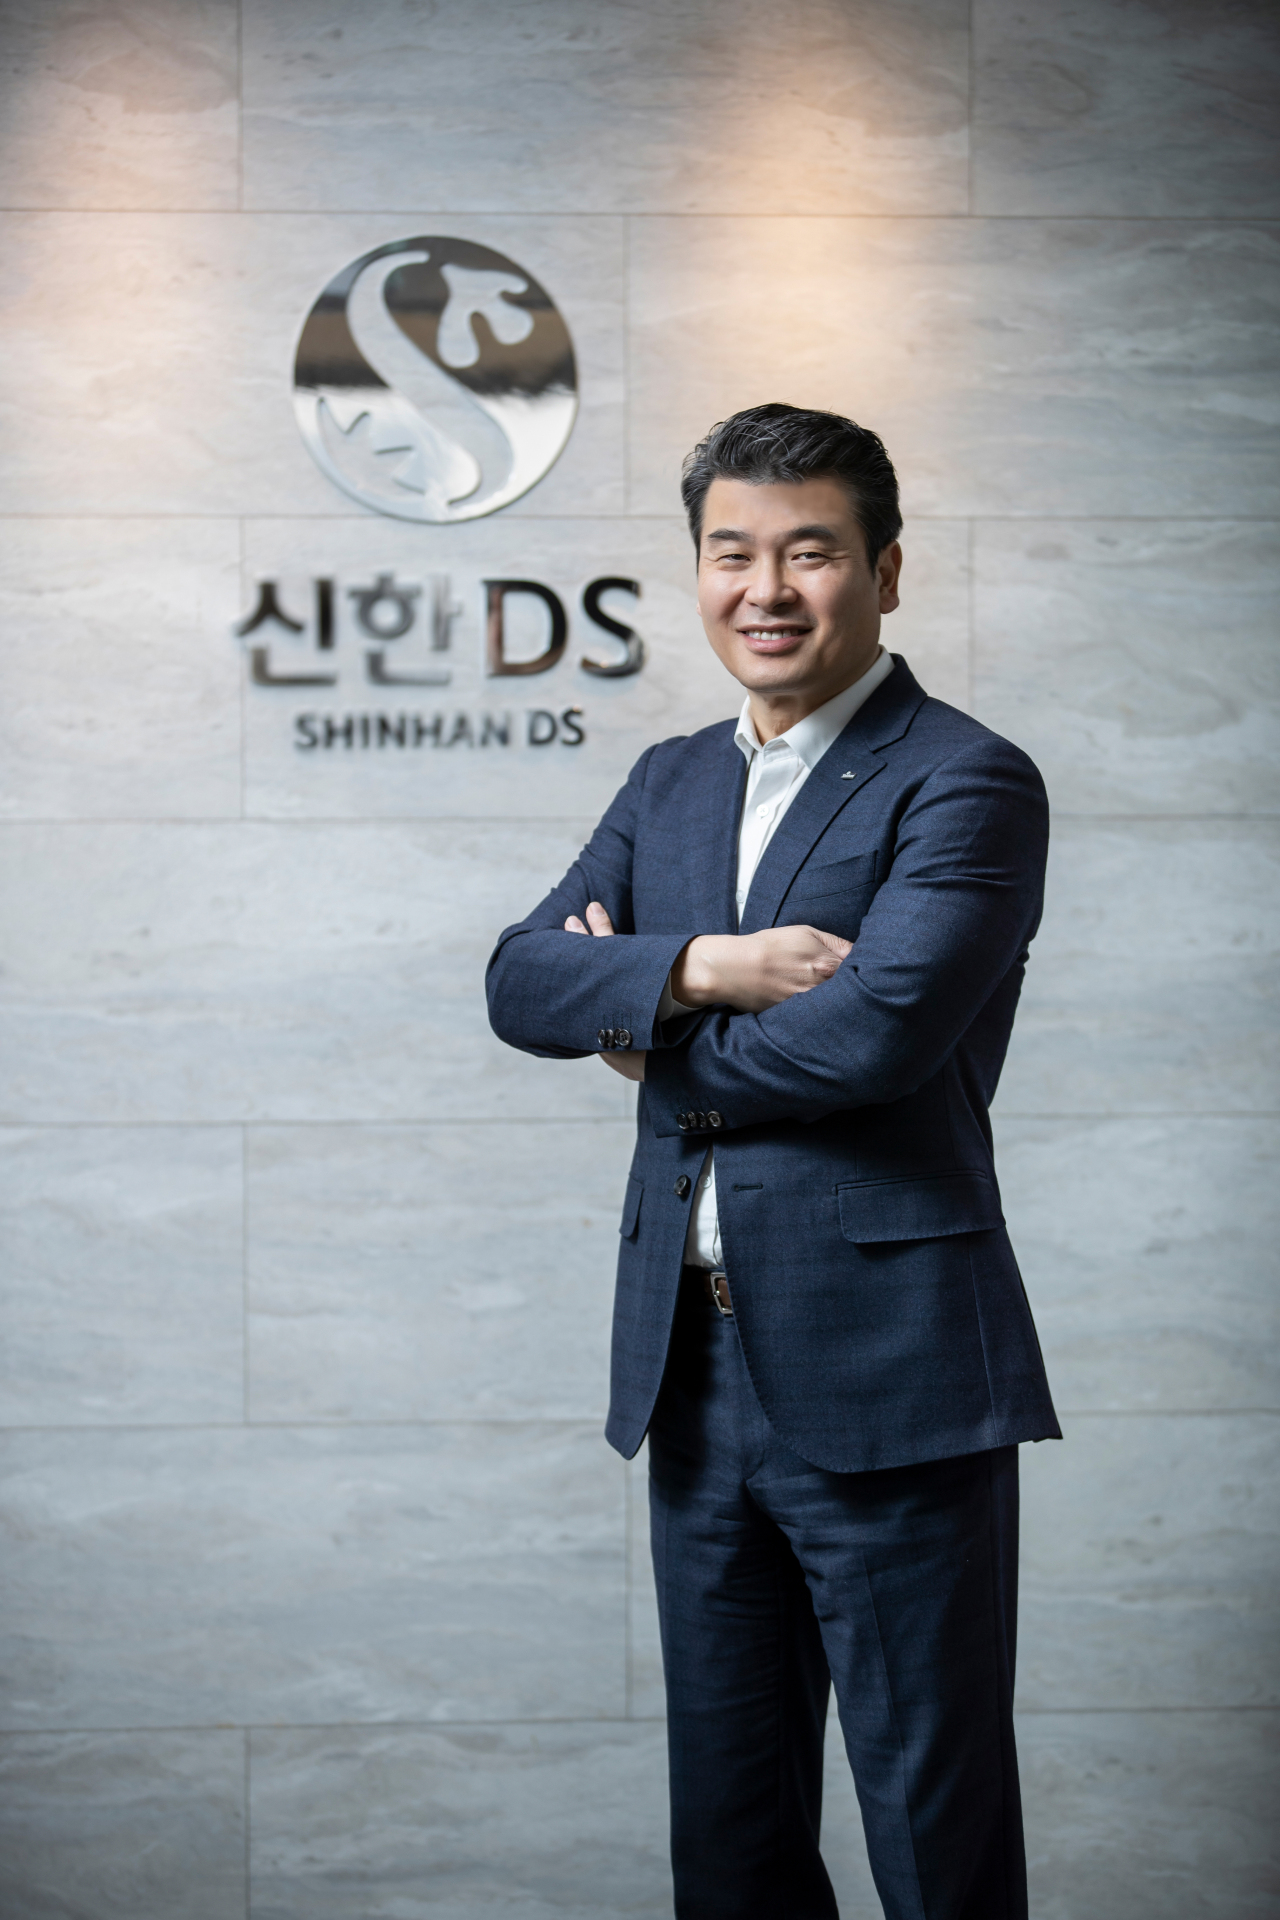 Shinhan DS President and CEO Sunny Yi poses for a photo at the firm in central Seoul. (Shinhan DS)